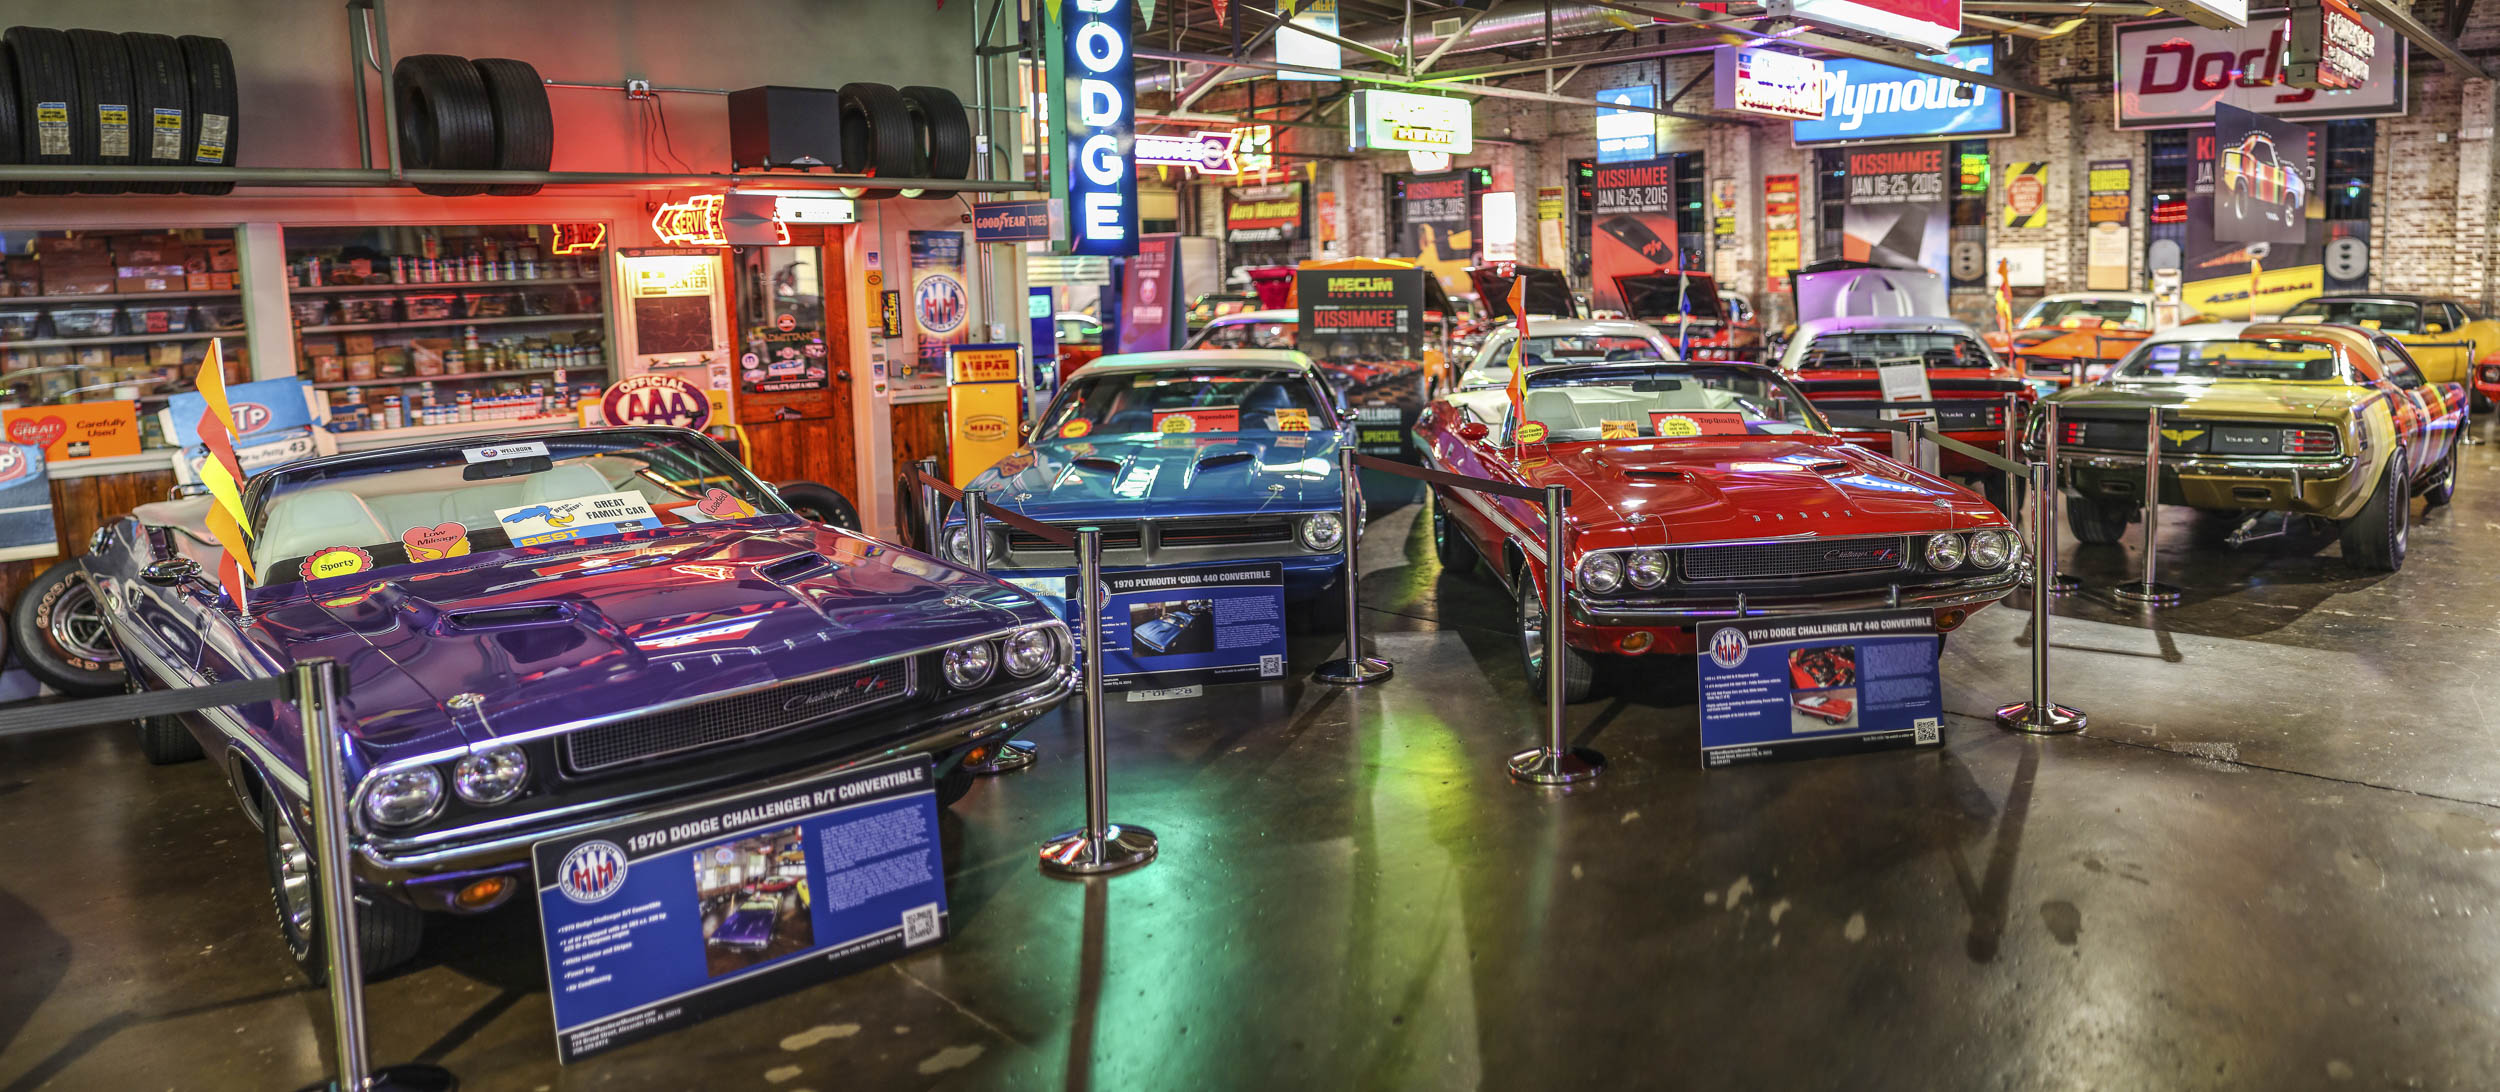 Besides the cars, the Wellborn Museum is filled with old Mopar dealership signs and memorabilia.